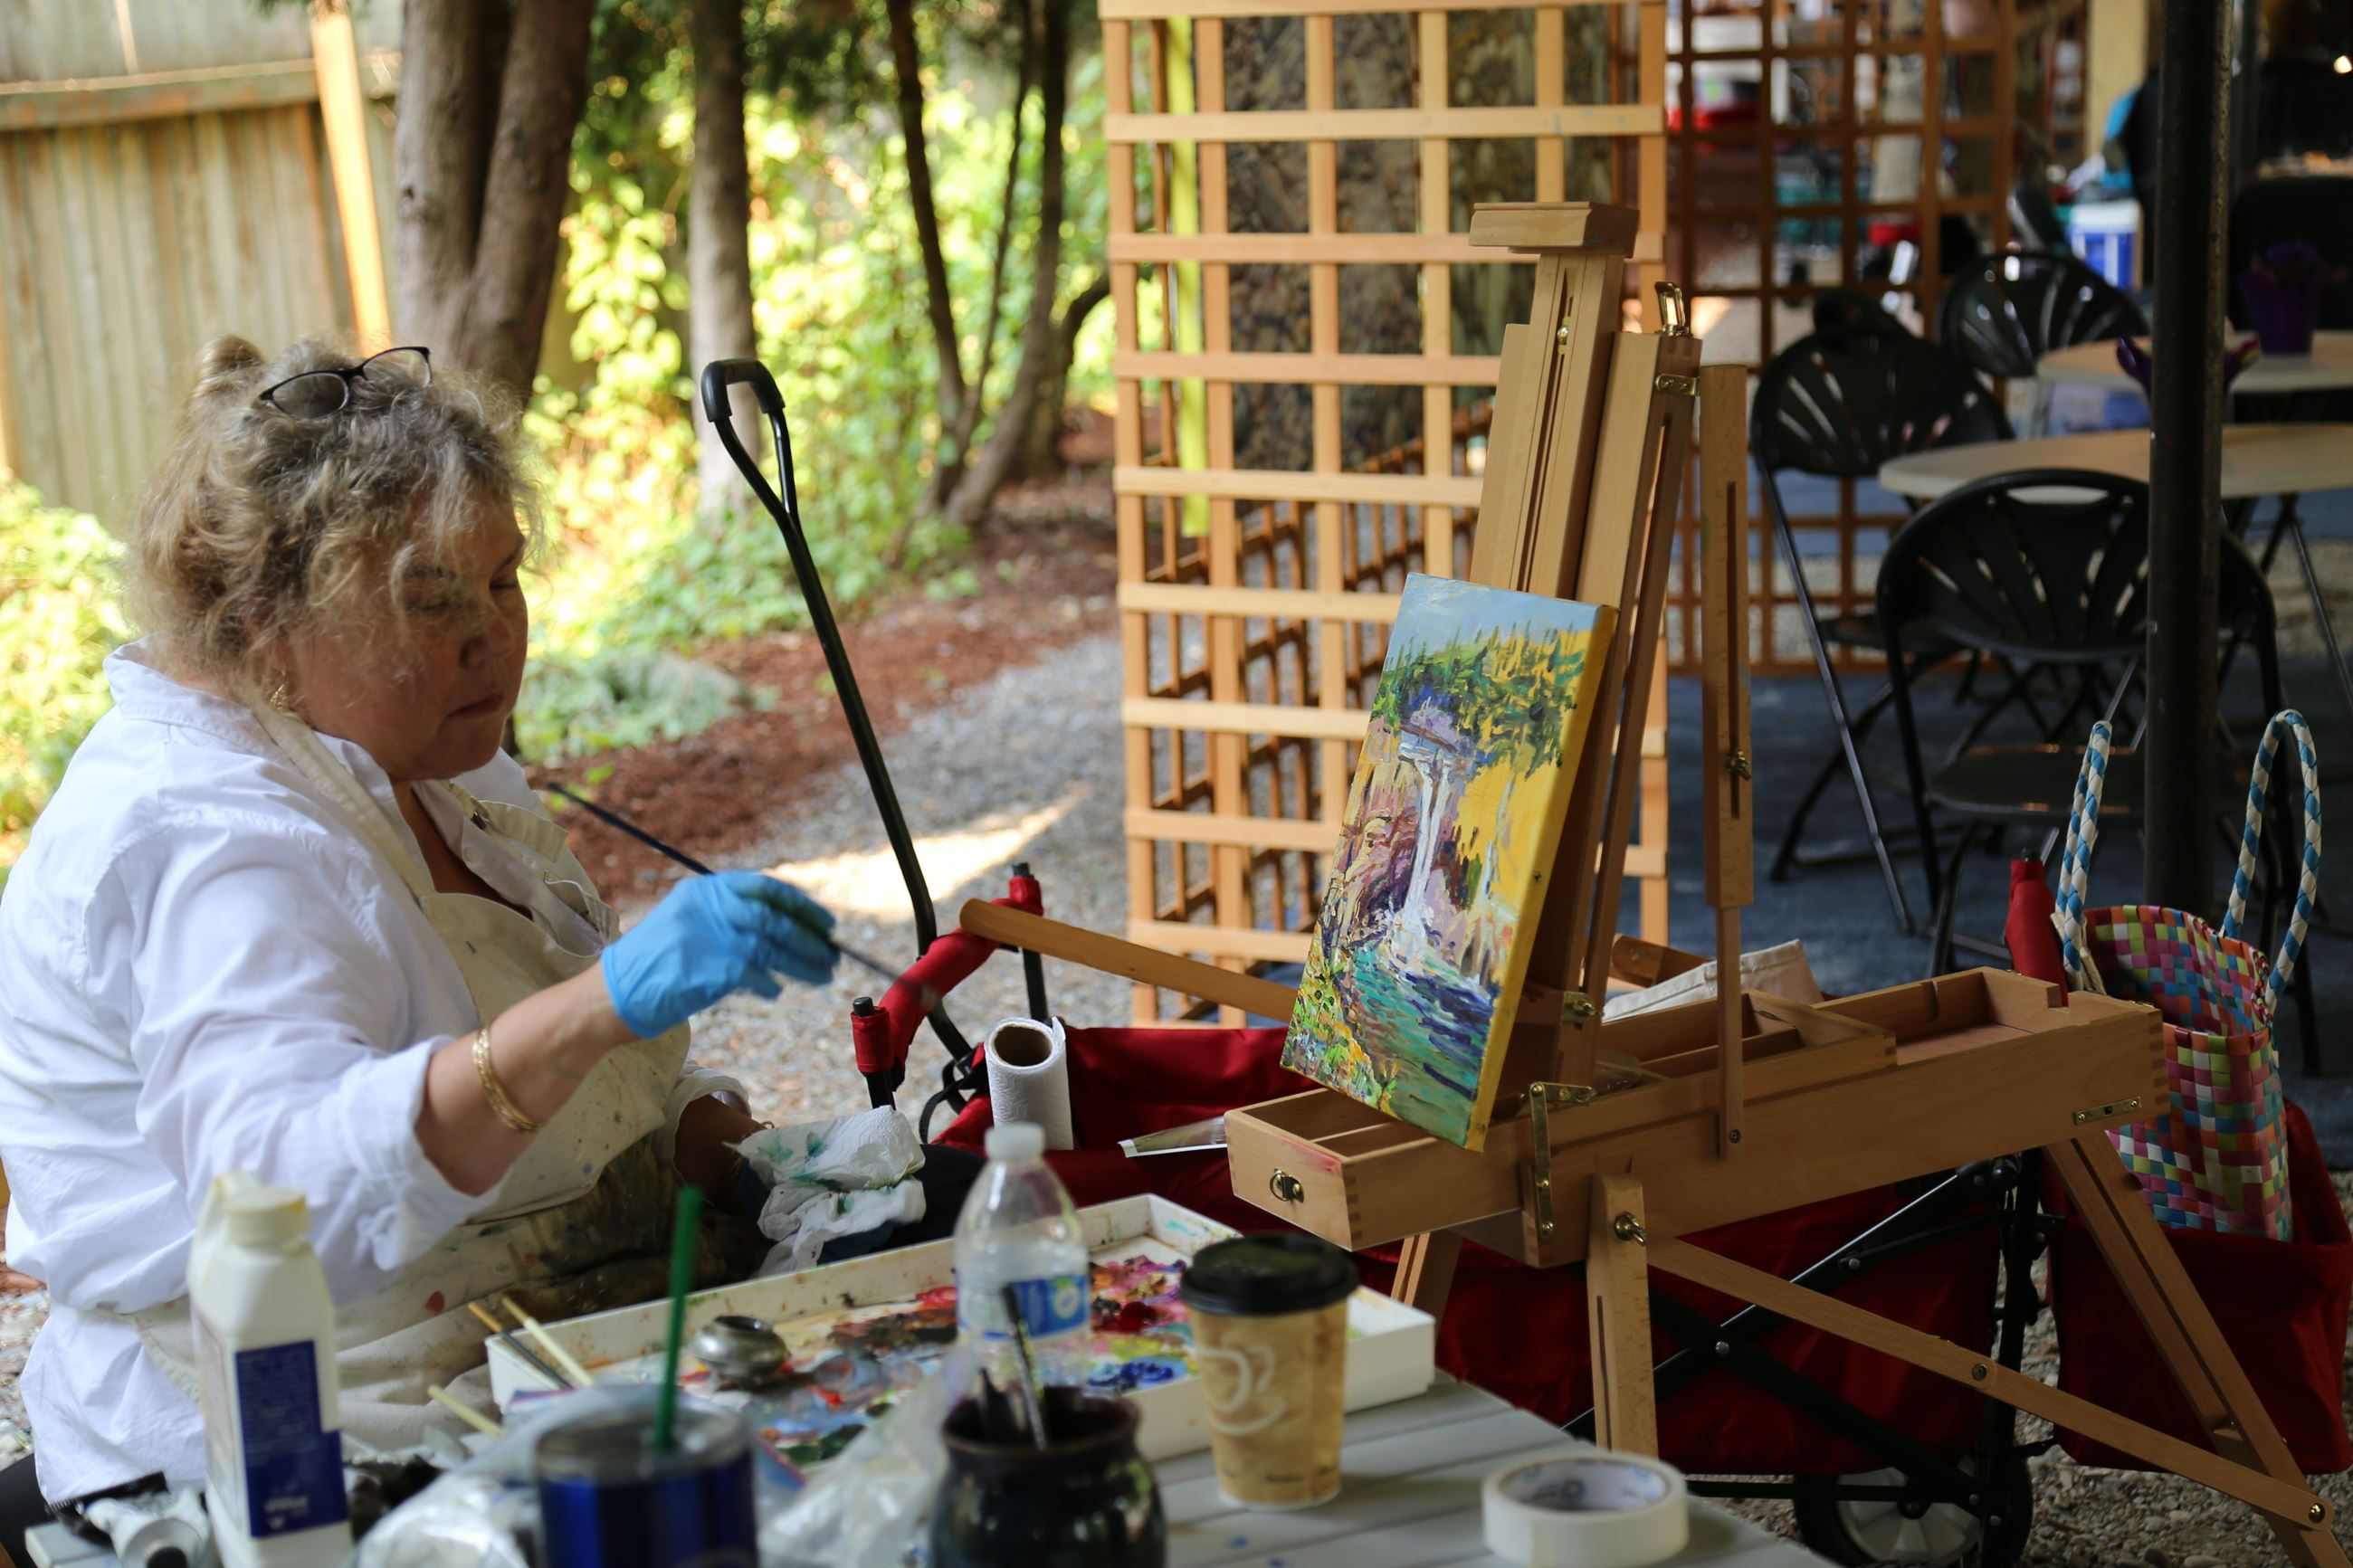 This is a photo of an artist painting during the Snoqualmie Plein Air Paint Out.